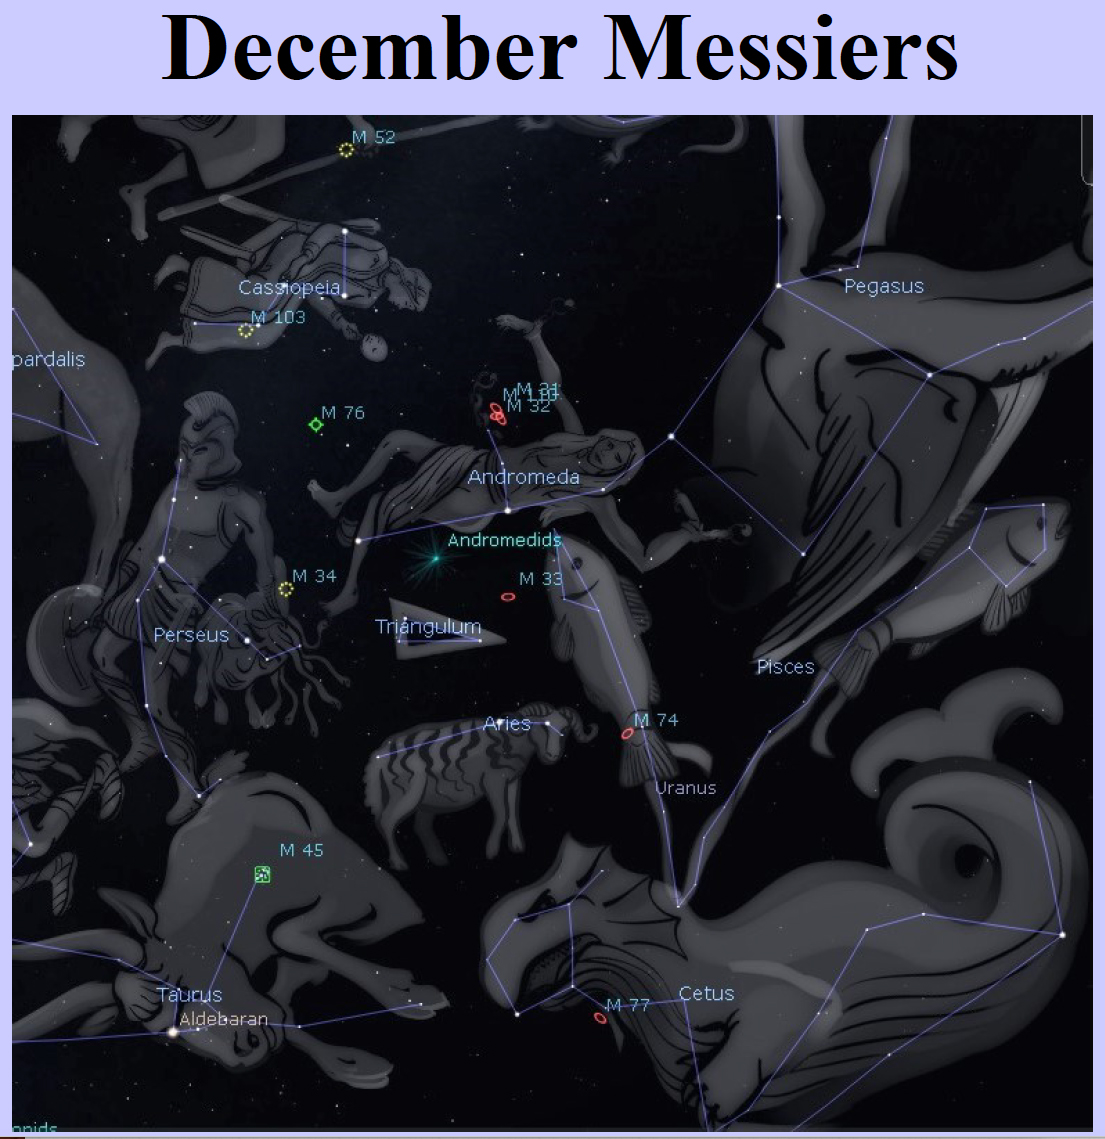 Messier objects for December